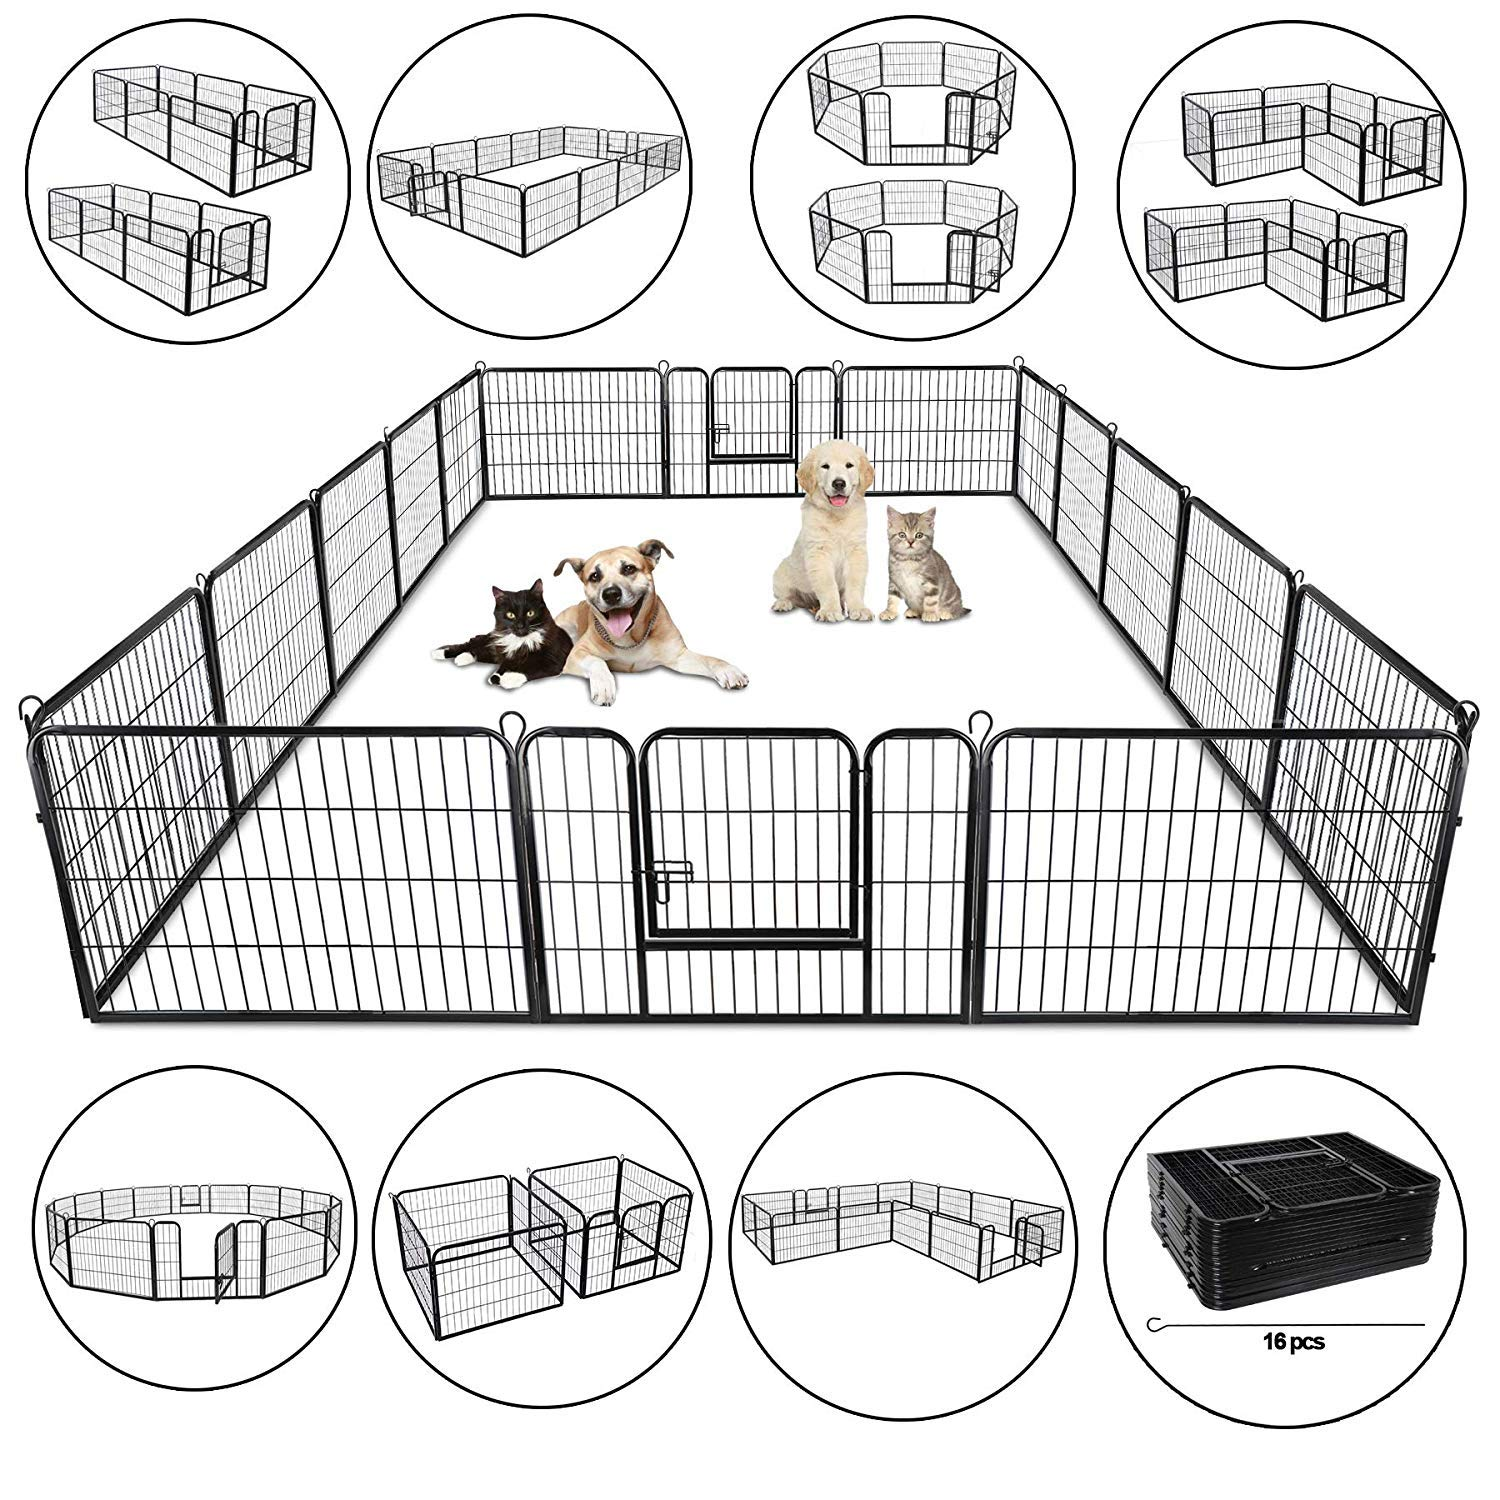 Nova Microdermabrasion Foldable Metal Exercise Pen Pet Playpen Kennel with Door, Outdoor/Indoor Play Yard Small Dog Puppy Cat Rabbit Fence Exercise Barrier Cage, 16/8 Panels (16 Panels)